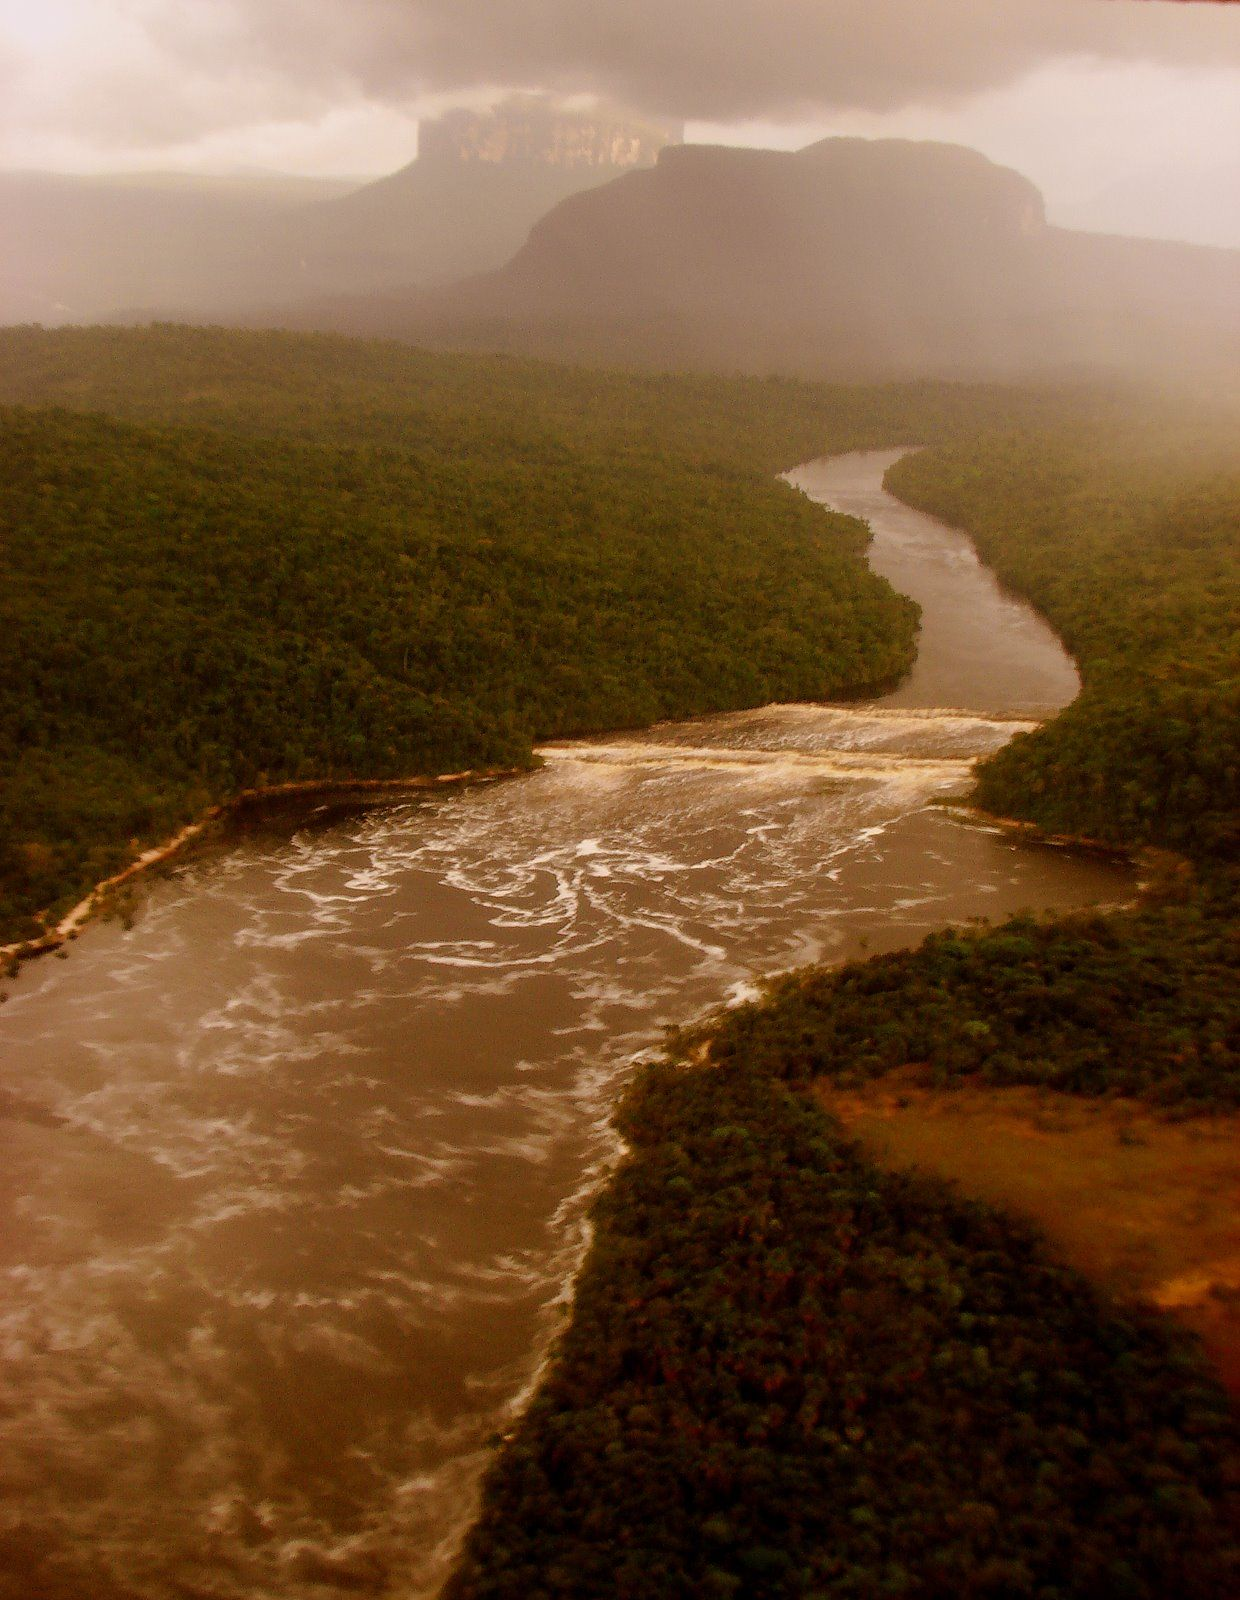 17 Best images about Orinoco River on Pinterest | Rivers ...